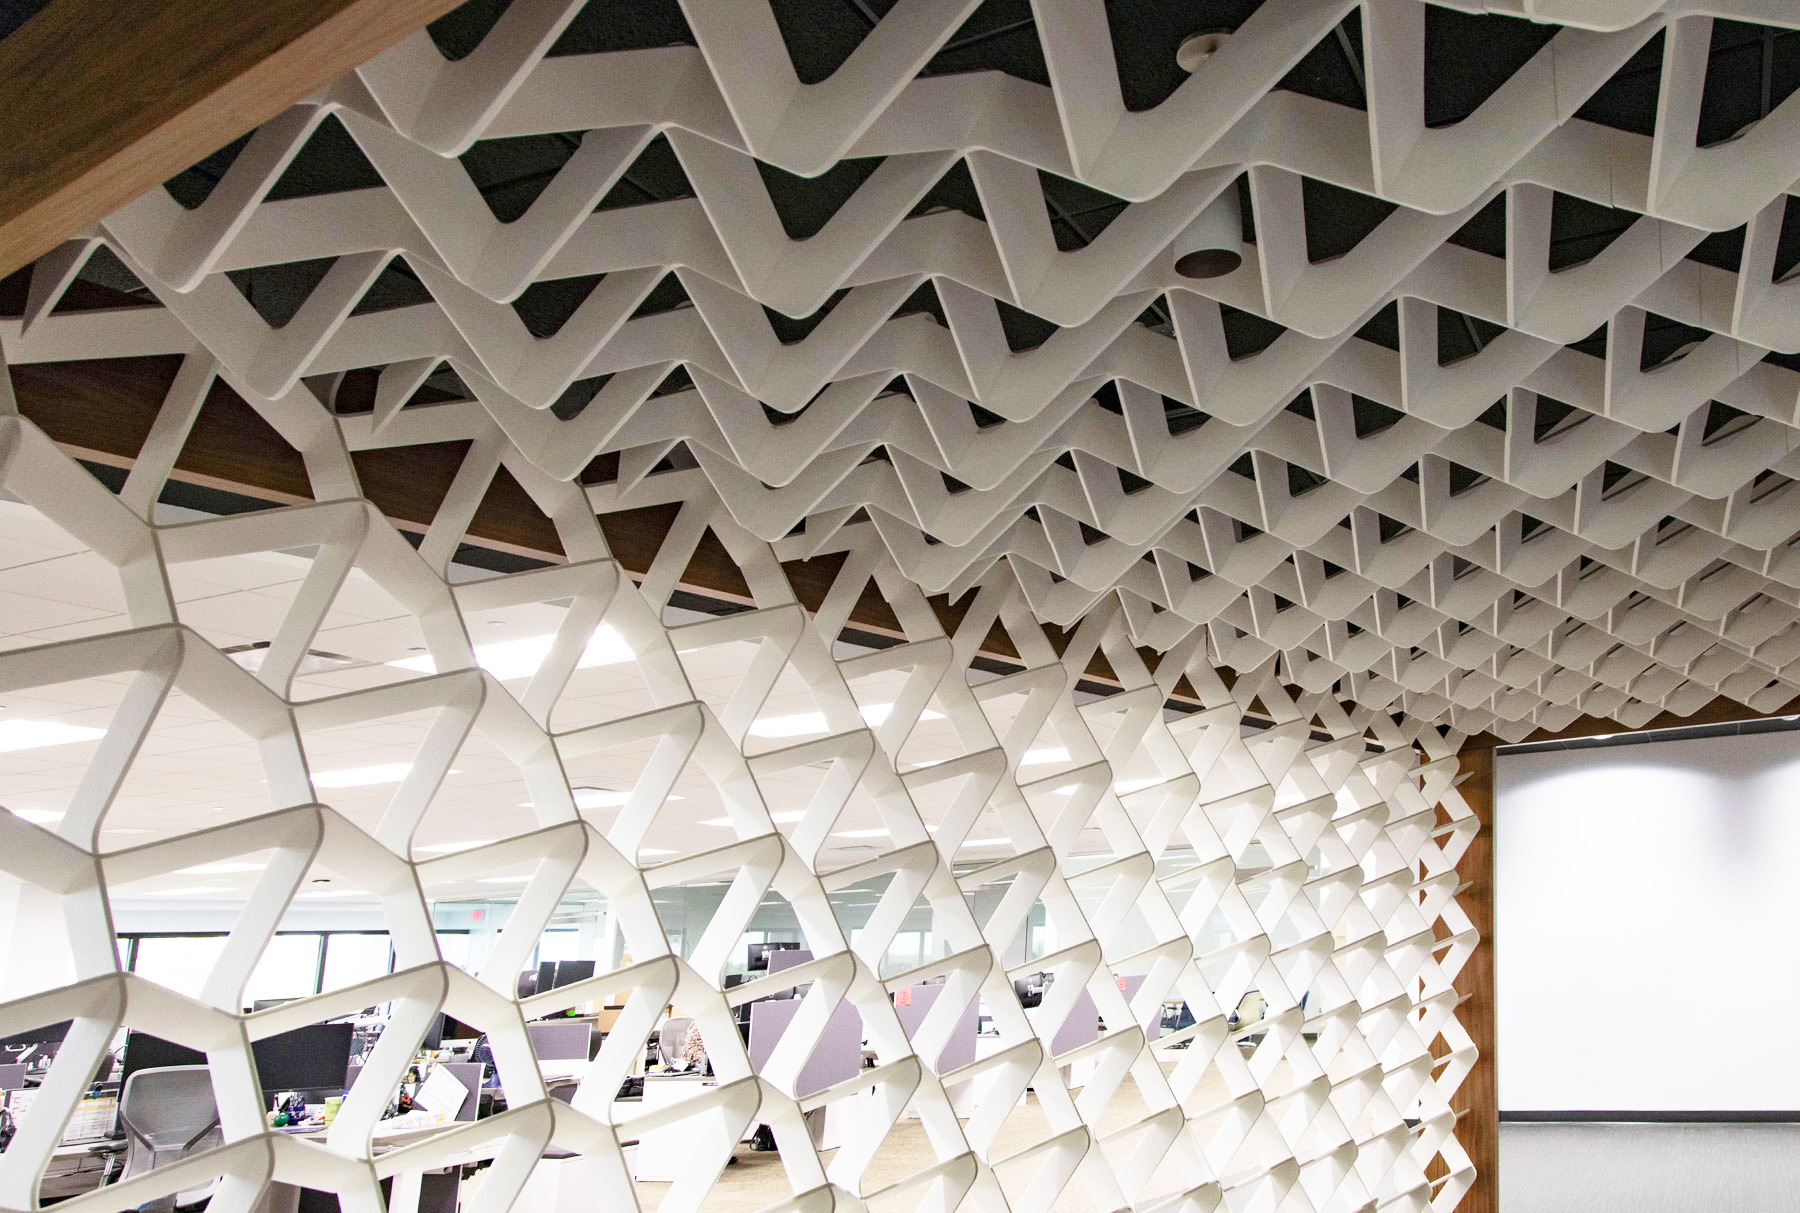 SoftGrid® Wave installed as acoustical ceiling and wall system at Sentry Insurance